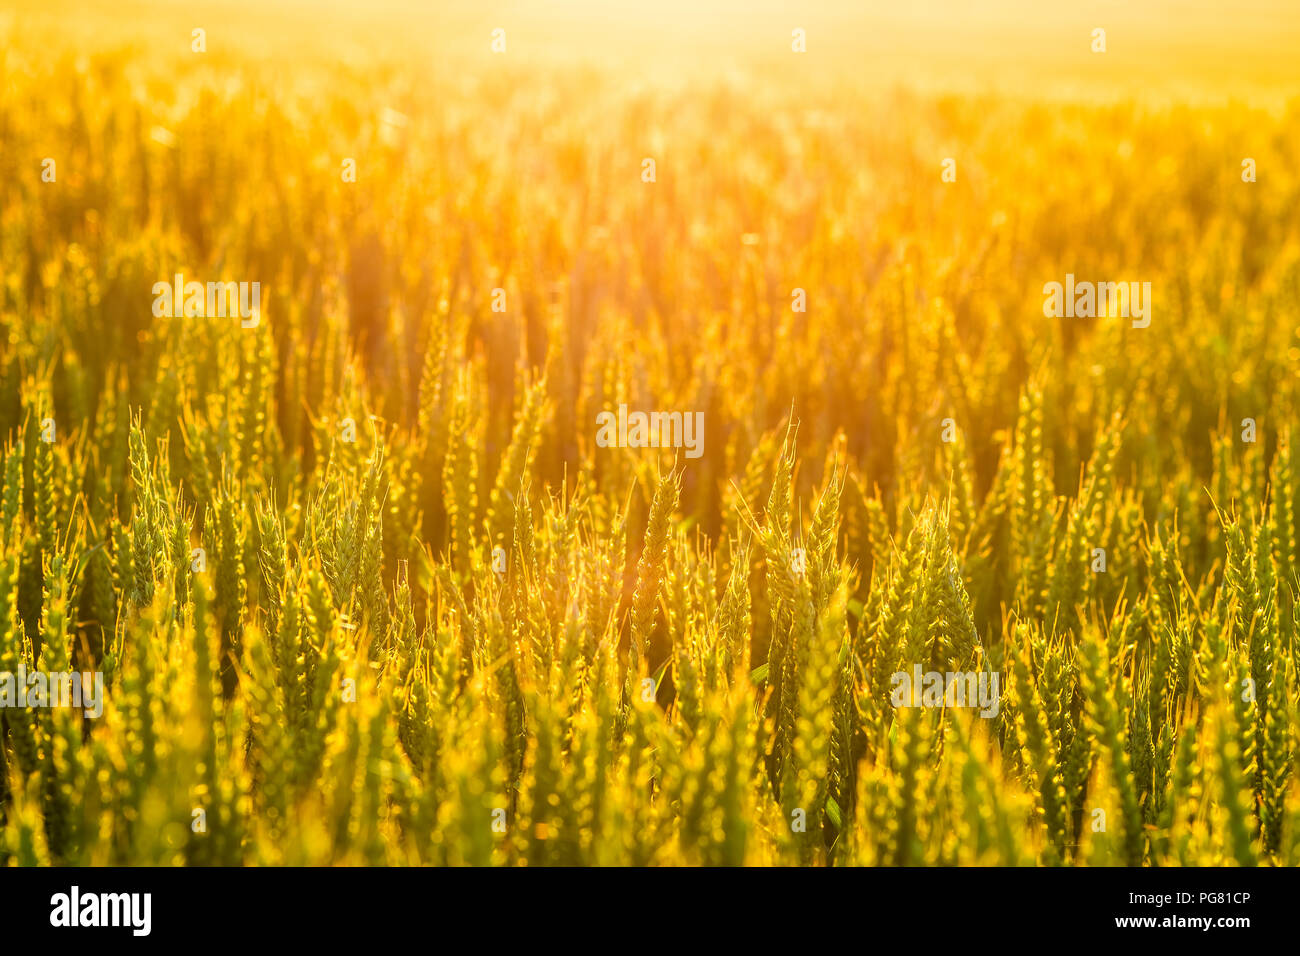 UK, Scotland, East Lothian, Sunset at the end of a hot day glows through a field of wheat (Triticum) - Stock Image